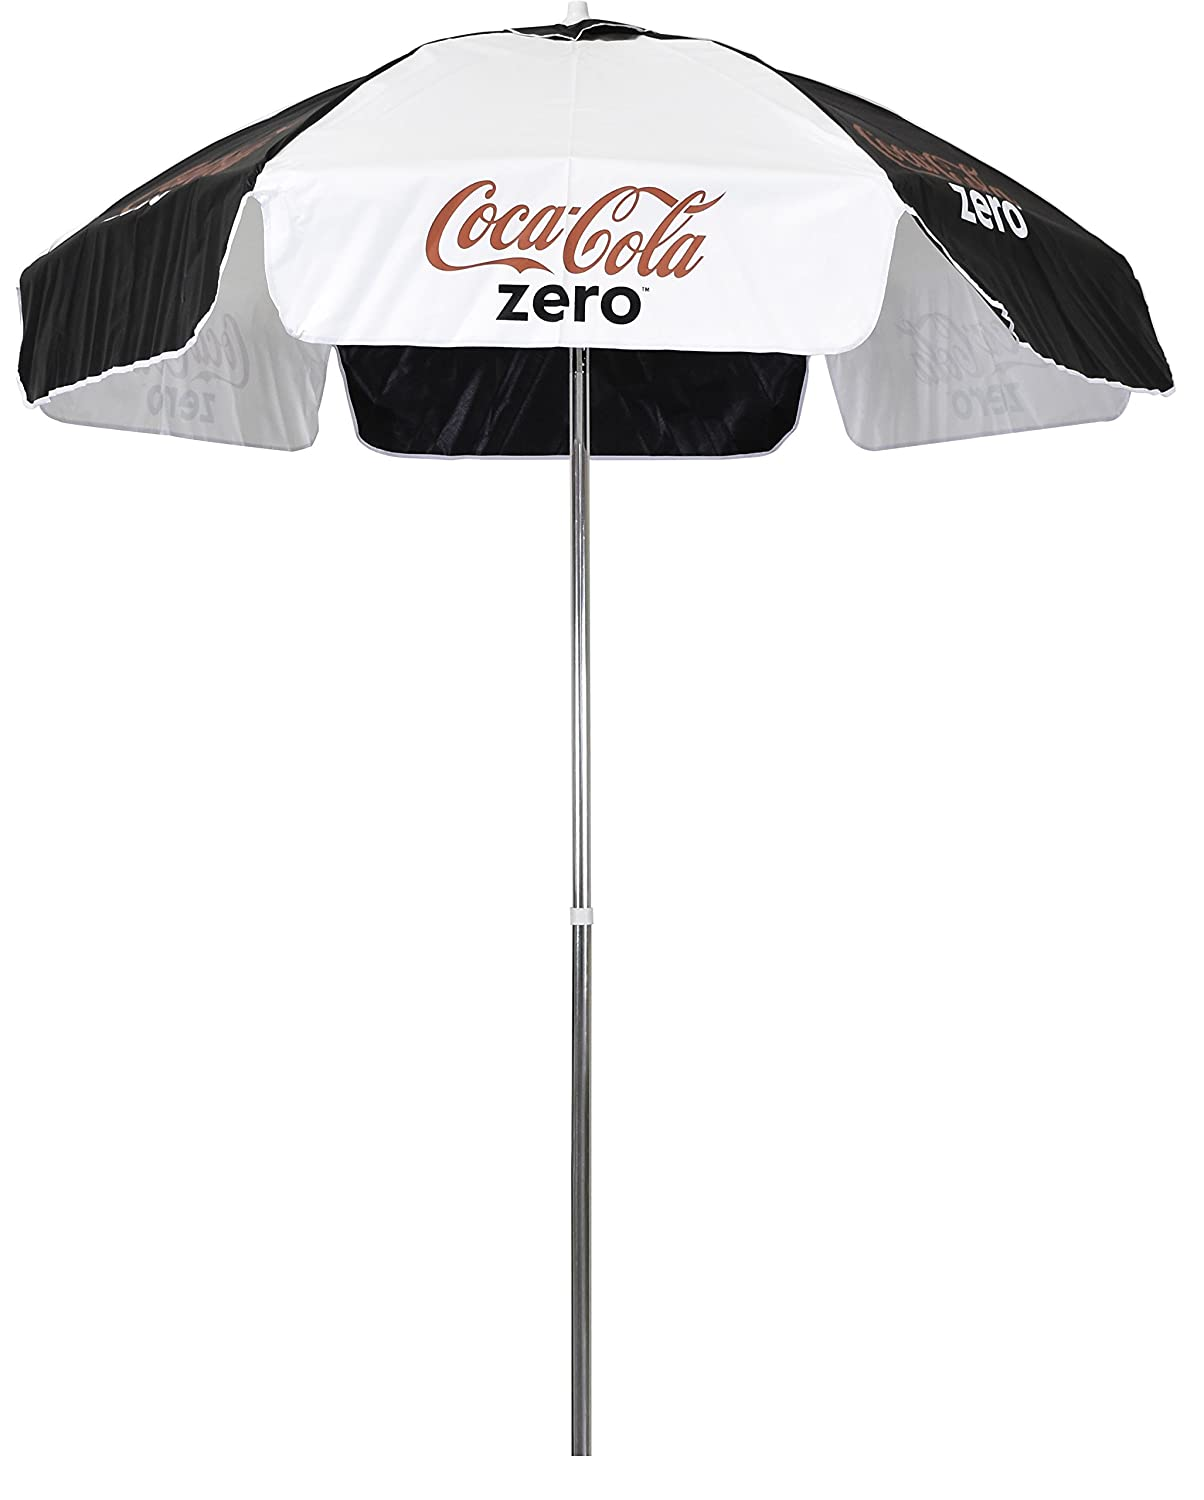 Coke Zero 6.5 Ft Patio Umbrella